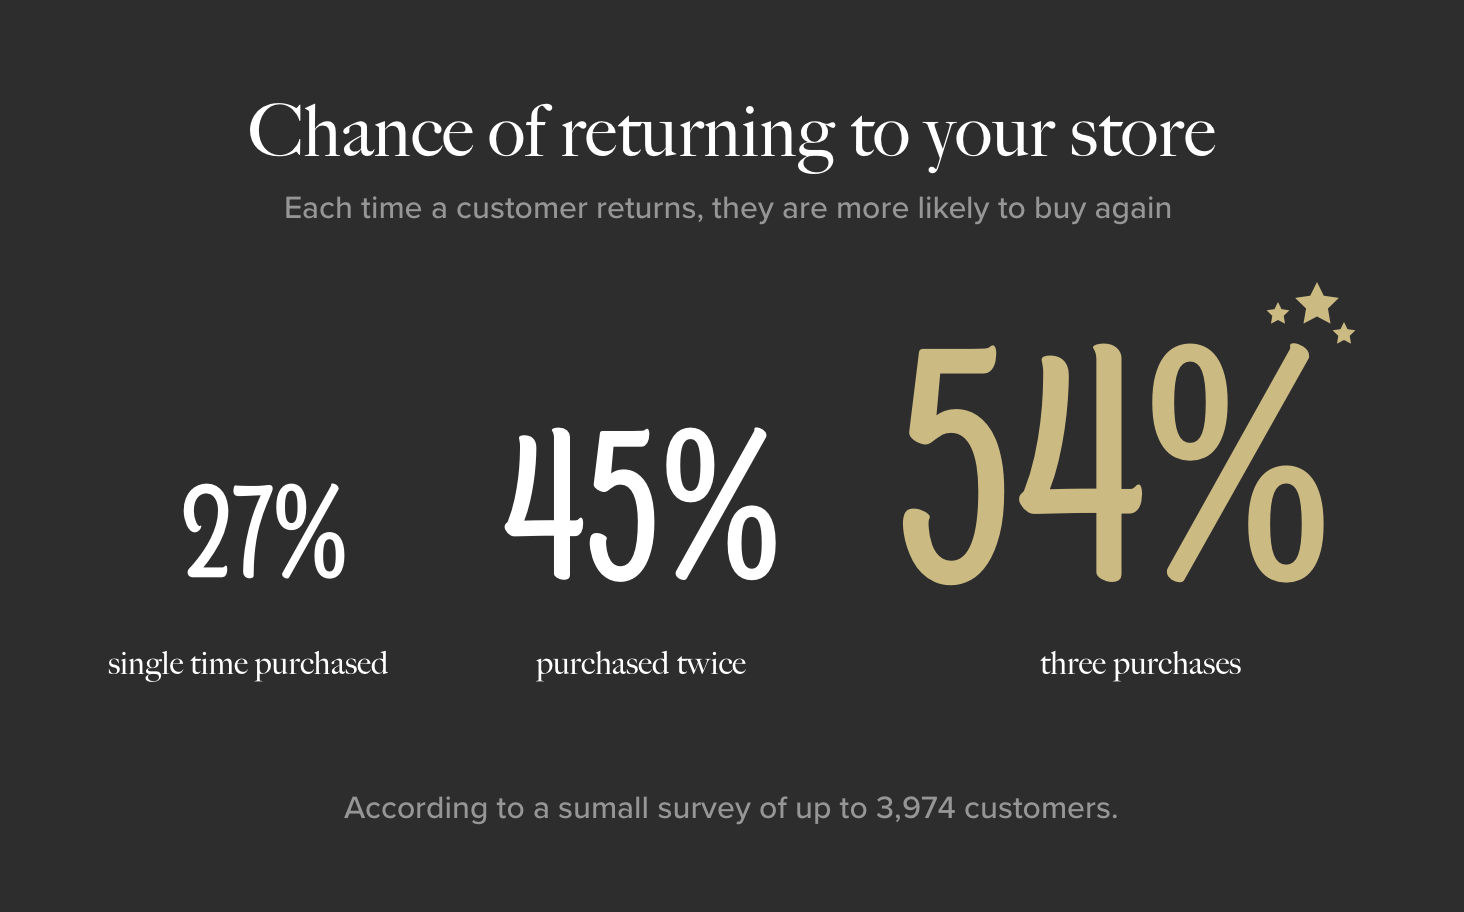 Chances of someone returning to your store